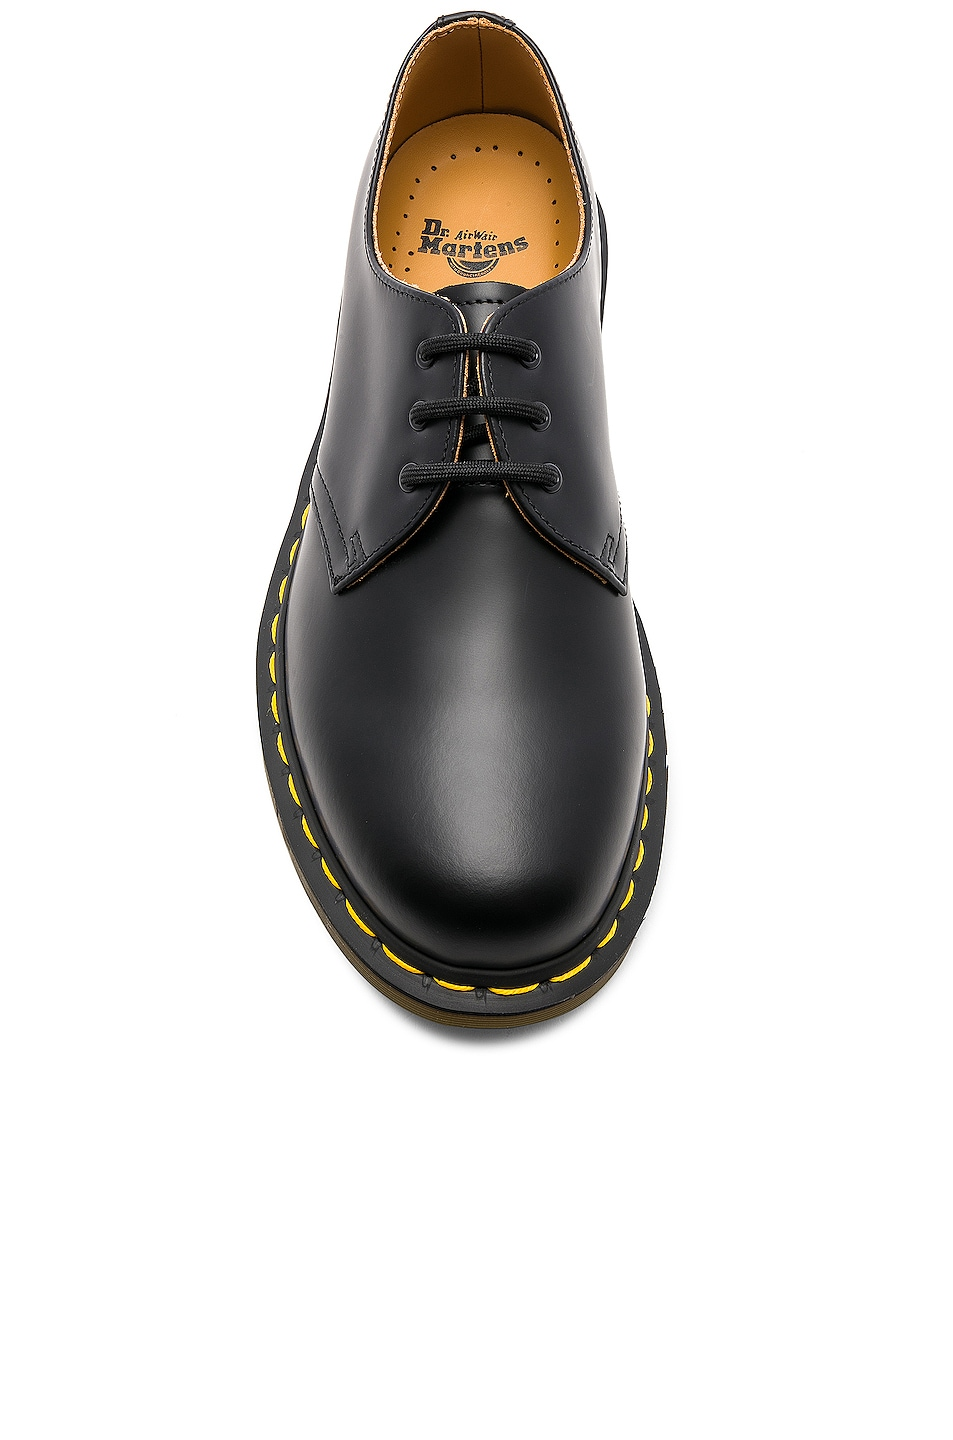 Image 4 of Dr. Martens 1461 3 Eye Gibson in Black